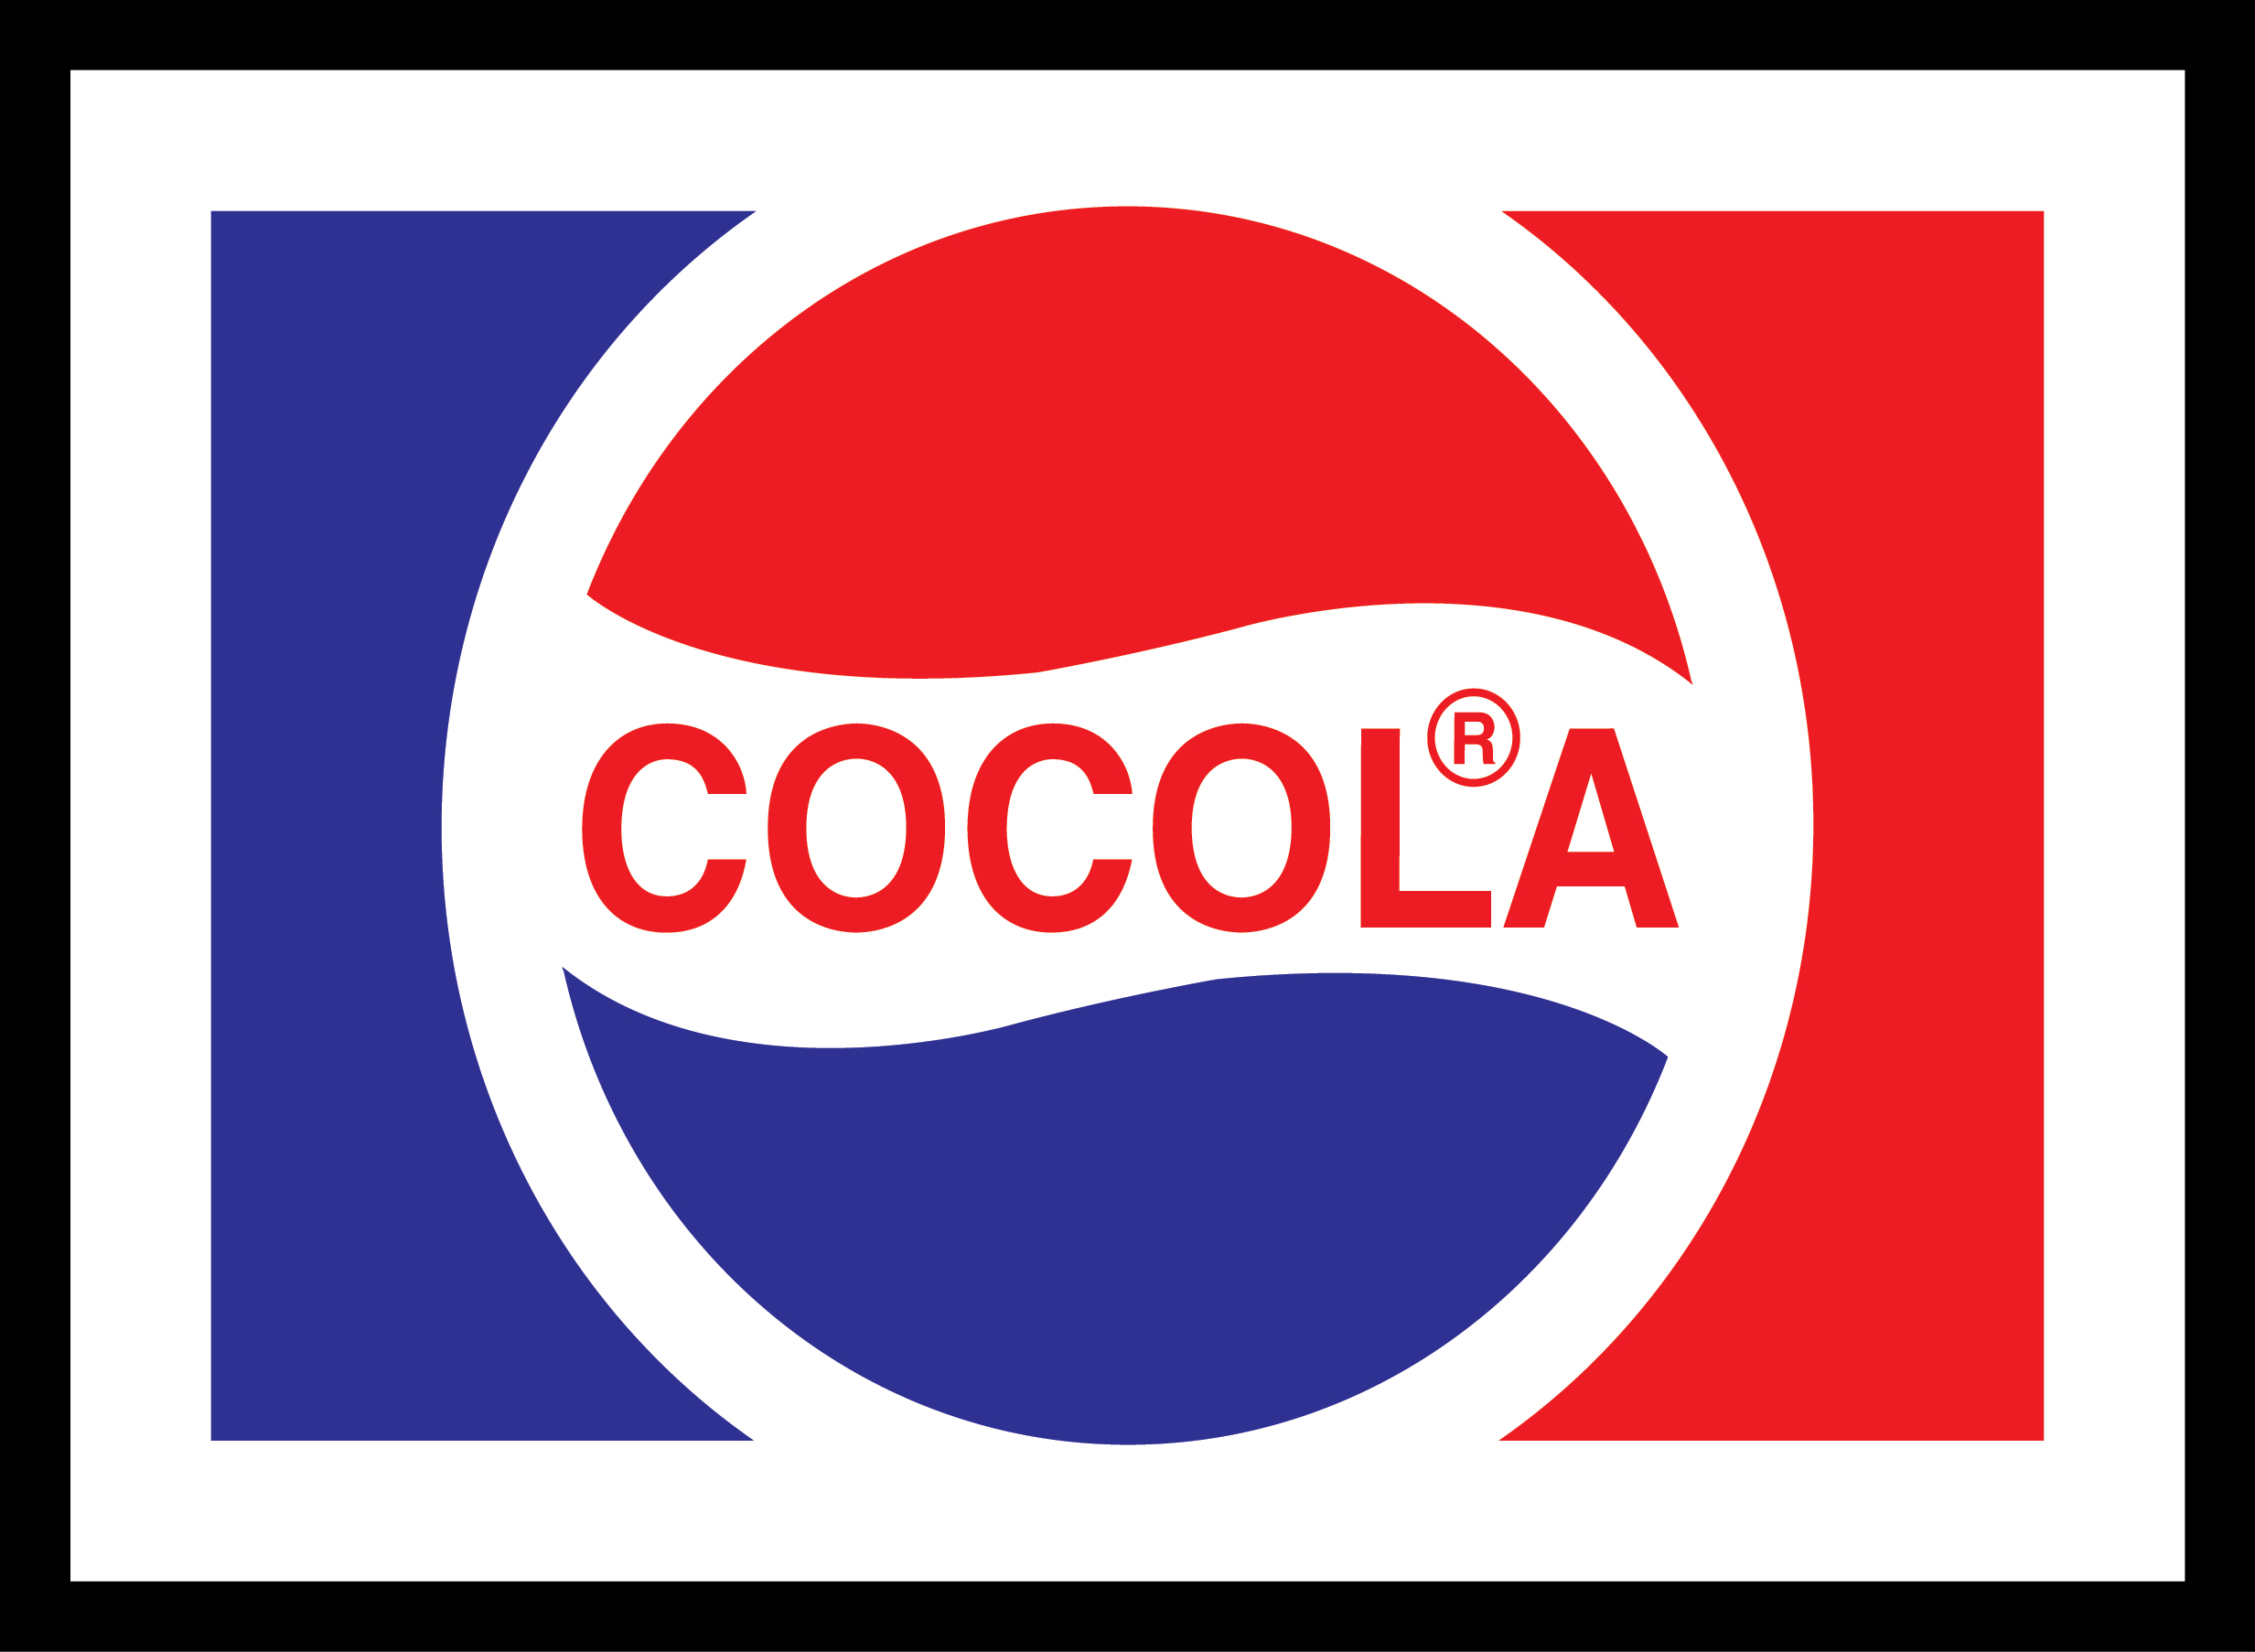 Cocola Food Products Limited